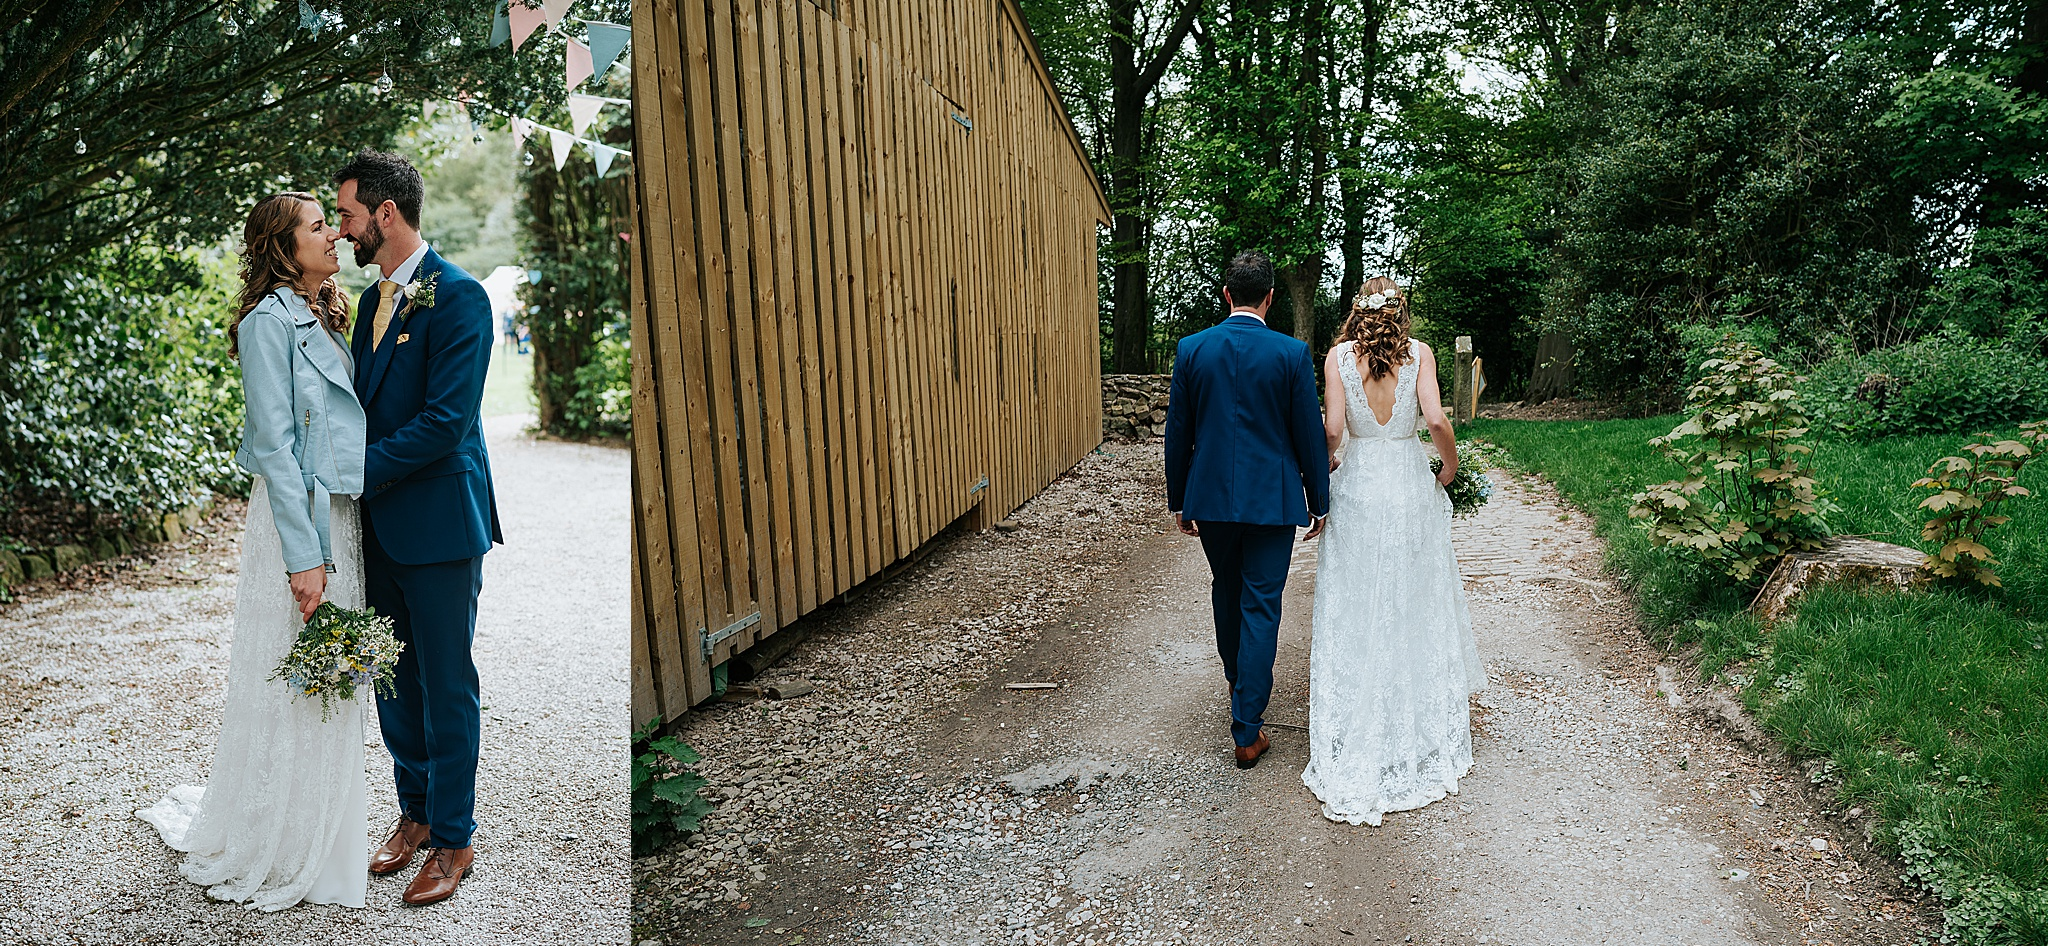 wyresdale park grounds and surrounds for wedding photographs